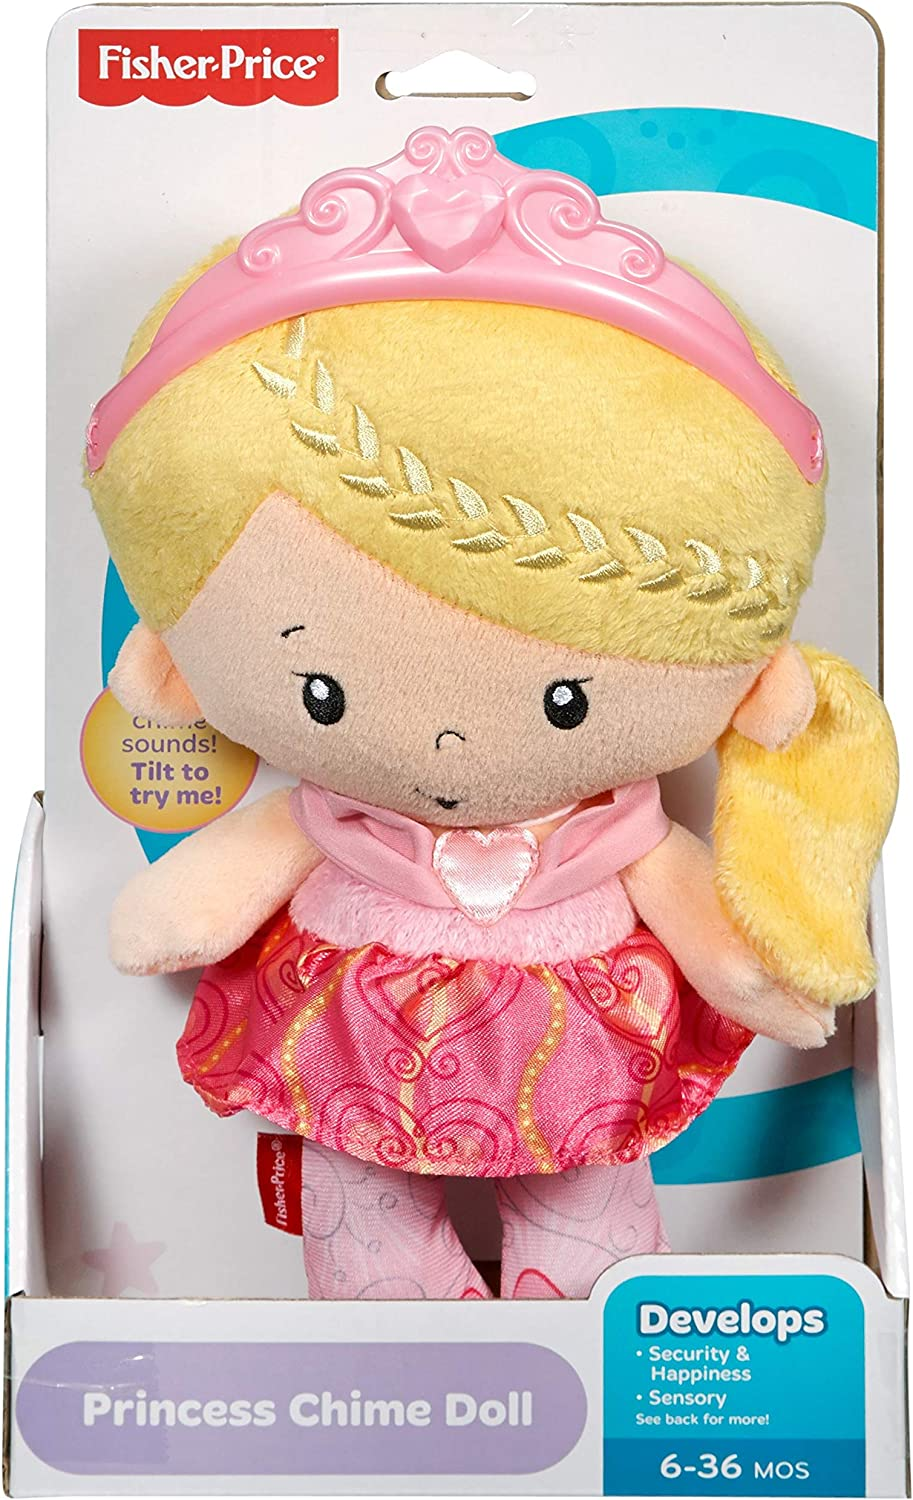 Amazon.com: Fisher-Price Princesa Chime muñeca: Toys & Games